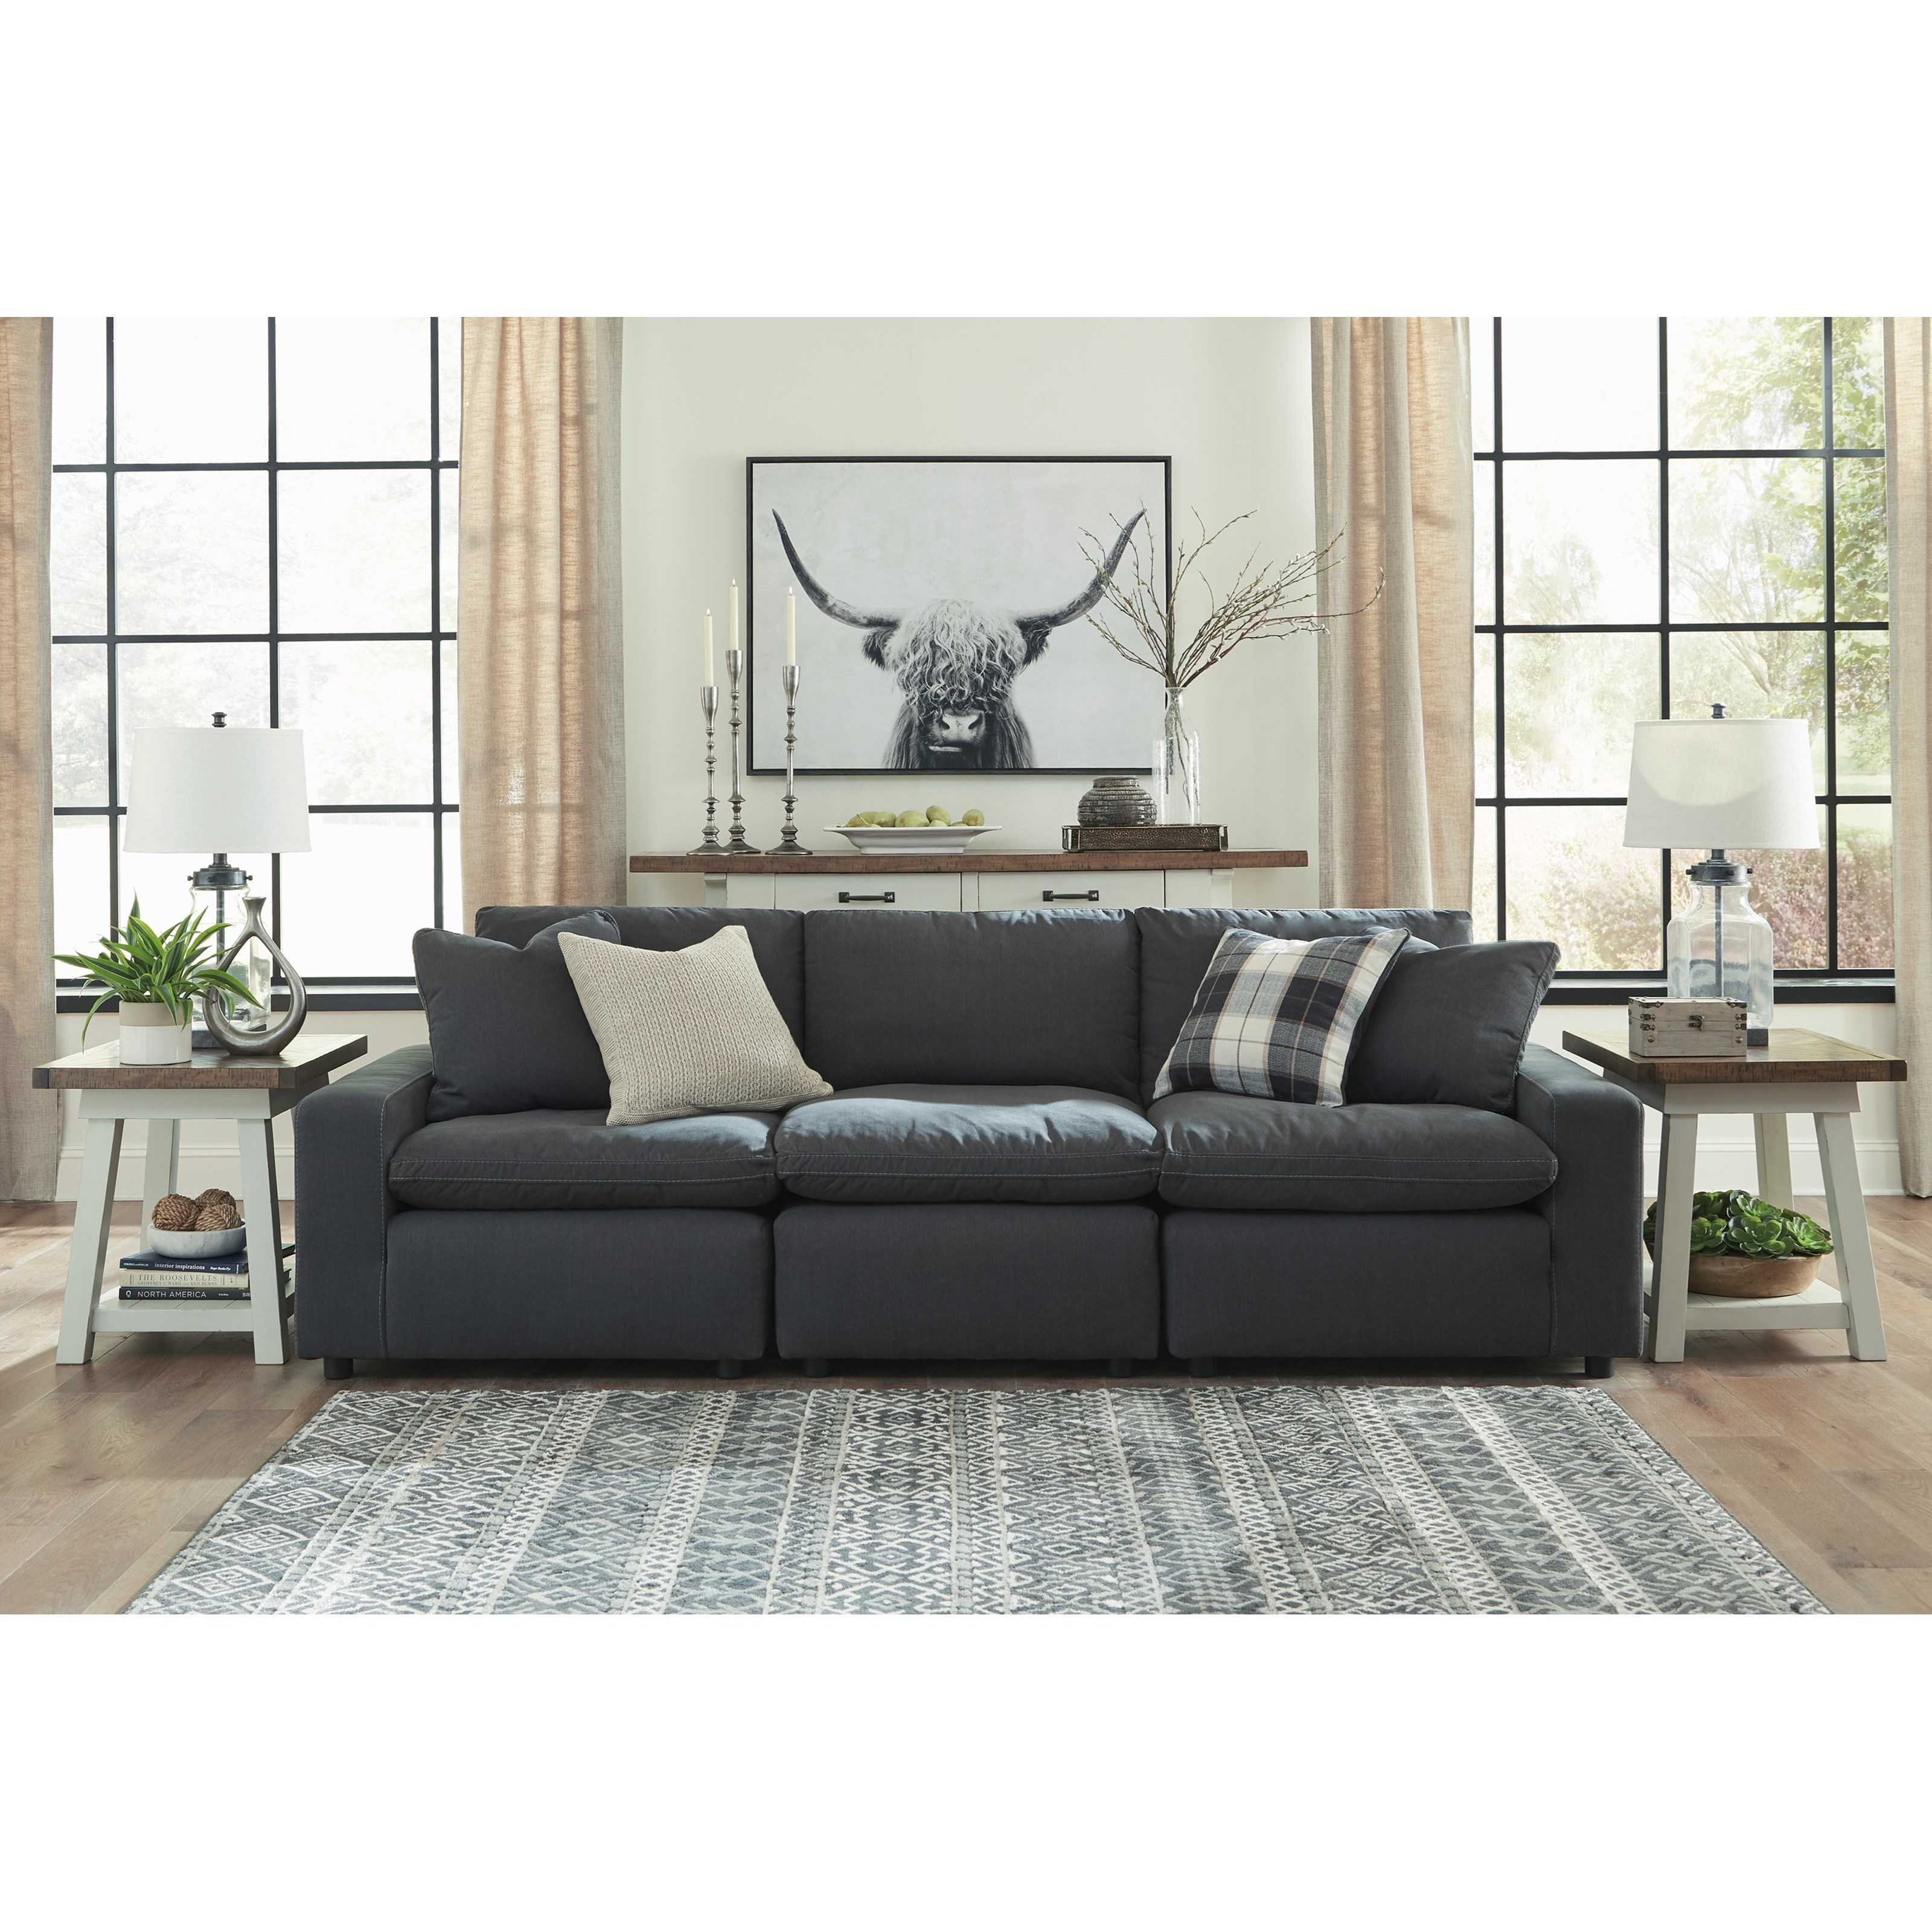 Savesto Sofa by Signature Design by Ashley at Red Knot